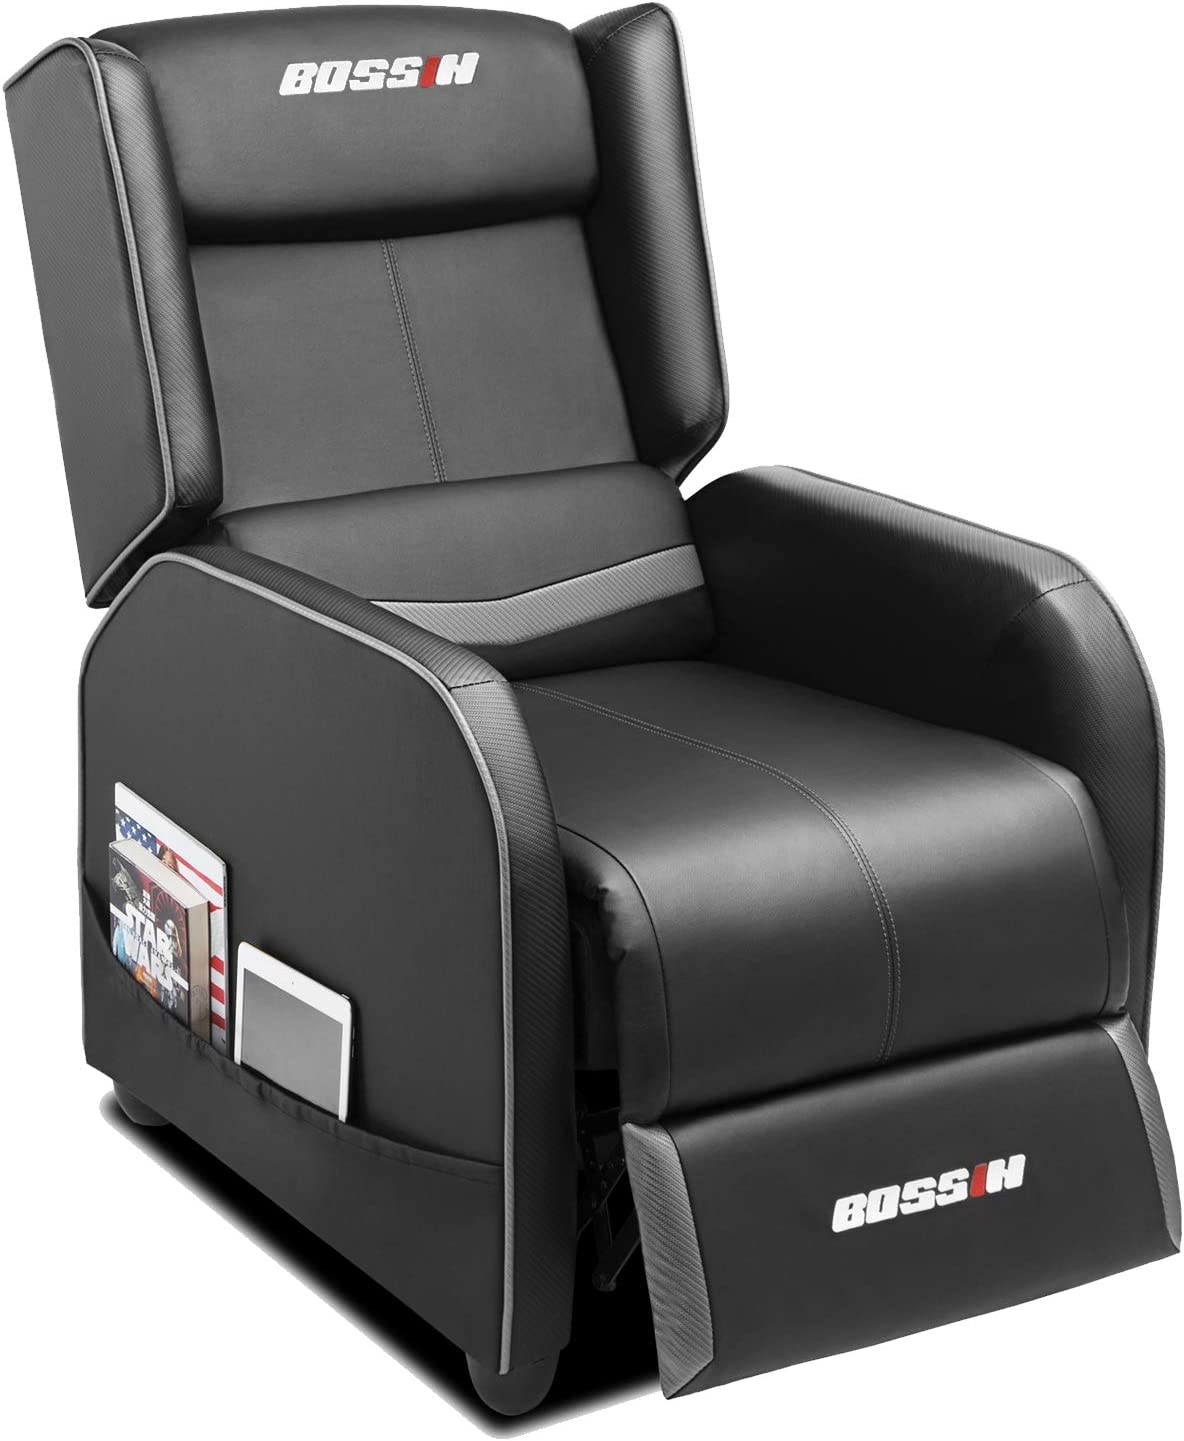 BOSSIN Gaming Recliner Chair